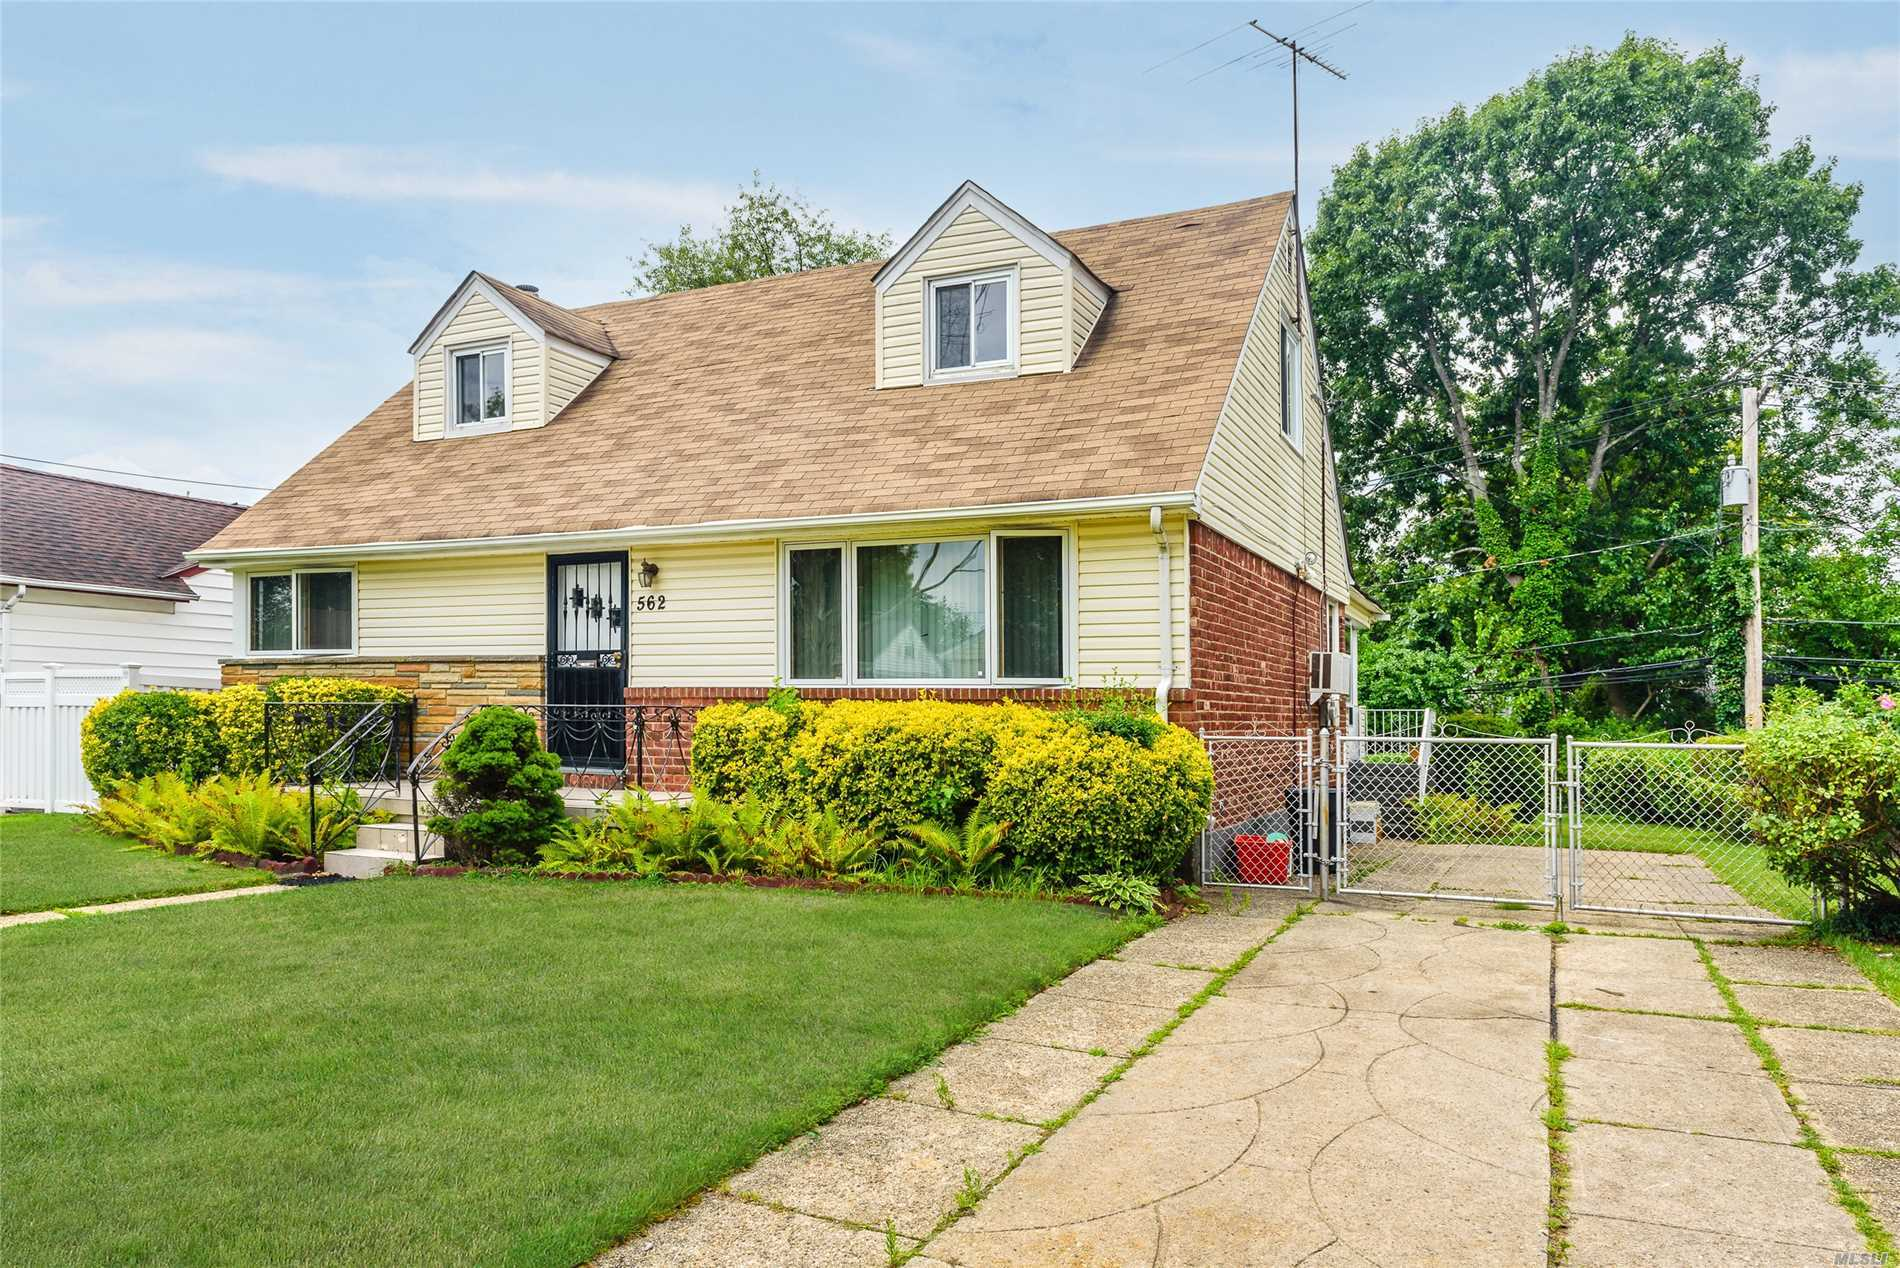 Spacious Cape, 4 Bedrooms, Finished Basement, Formal Dining Room, Den, Nice Yard. Near All